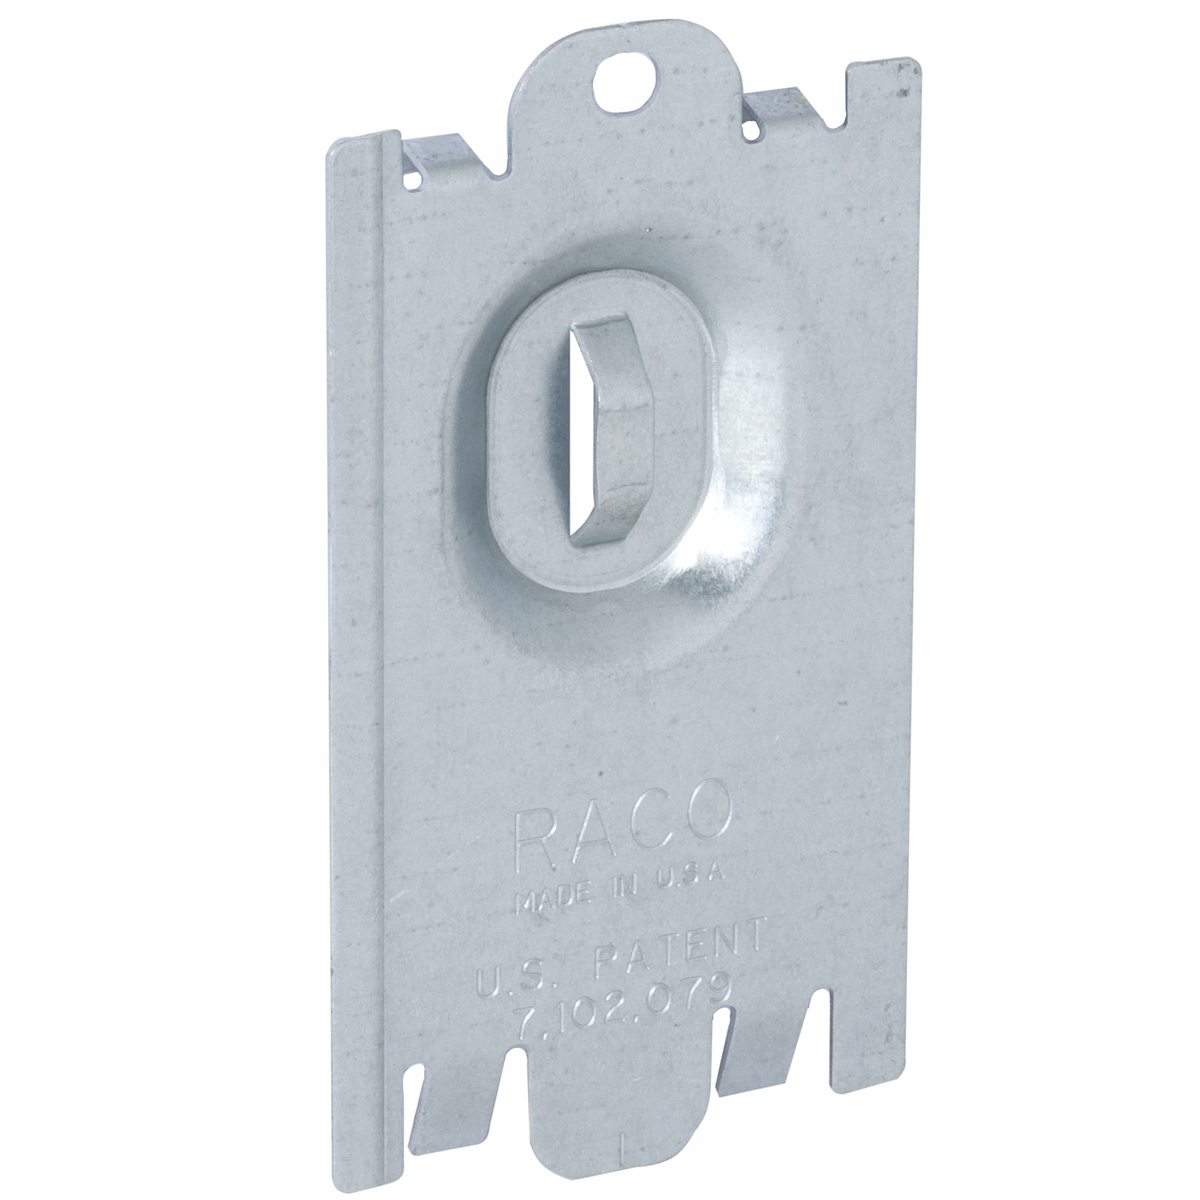 Hubbell-Raco 3303 Squeeze Conduit Connector